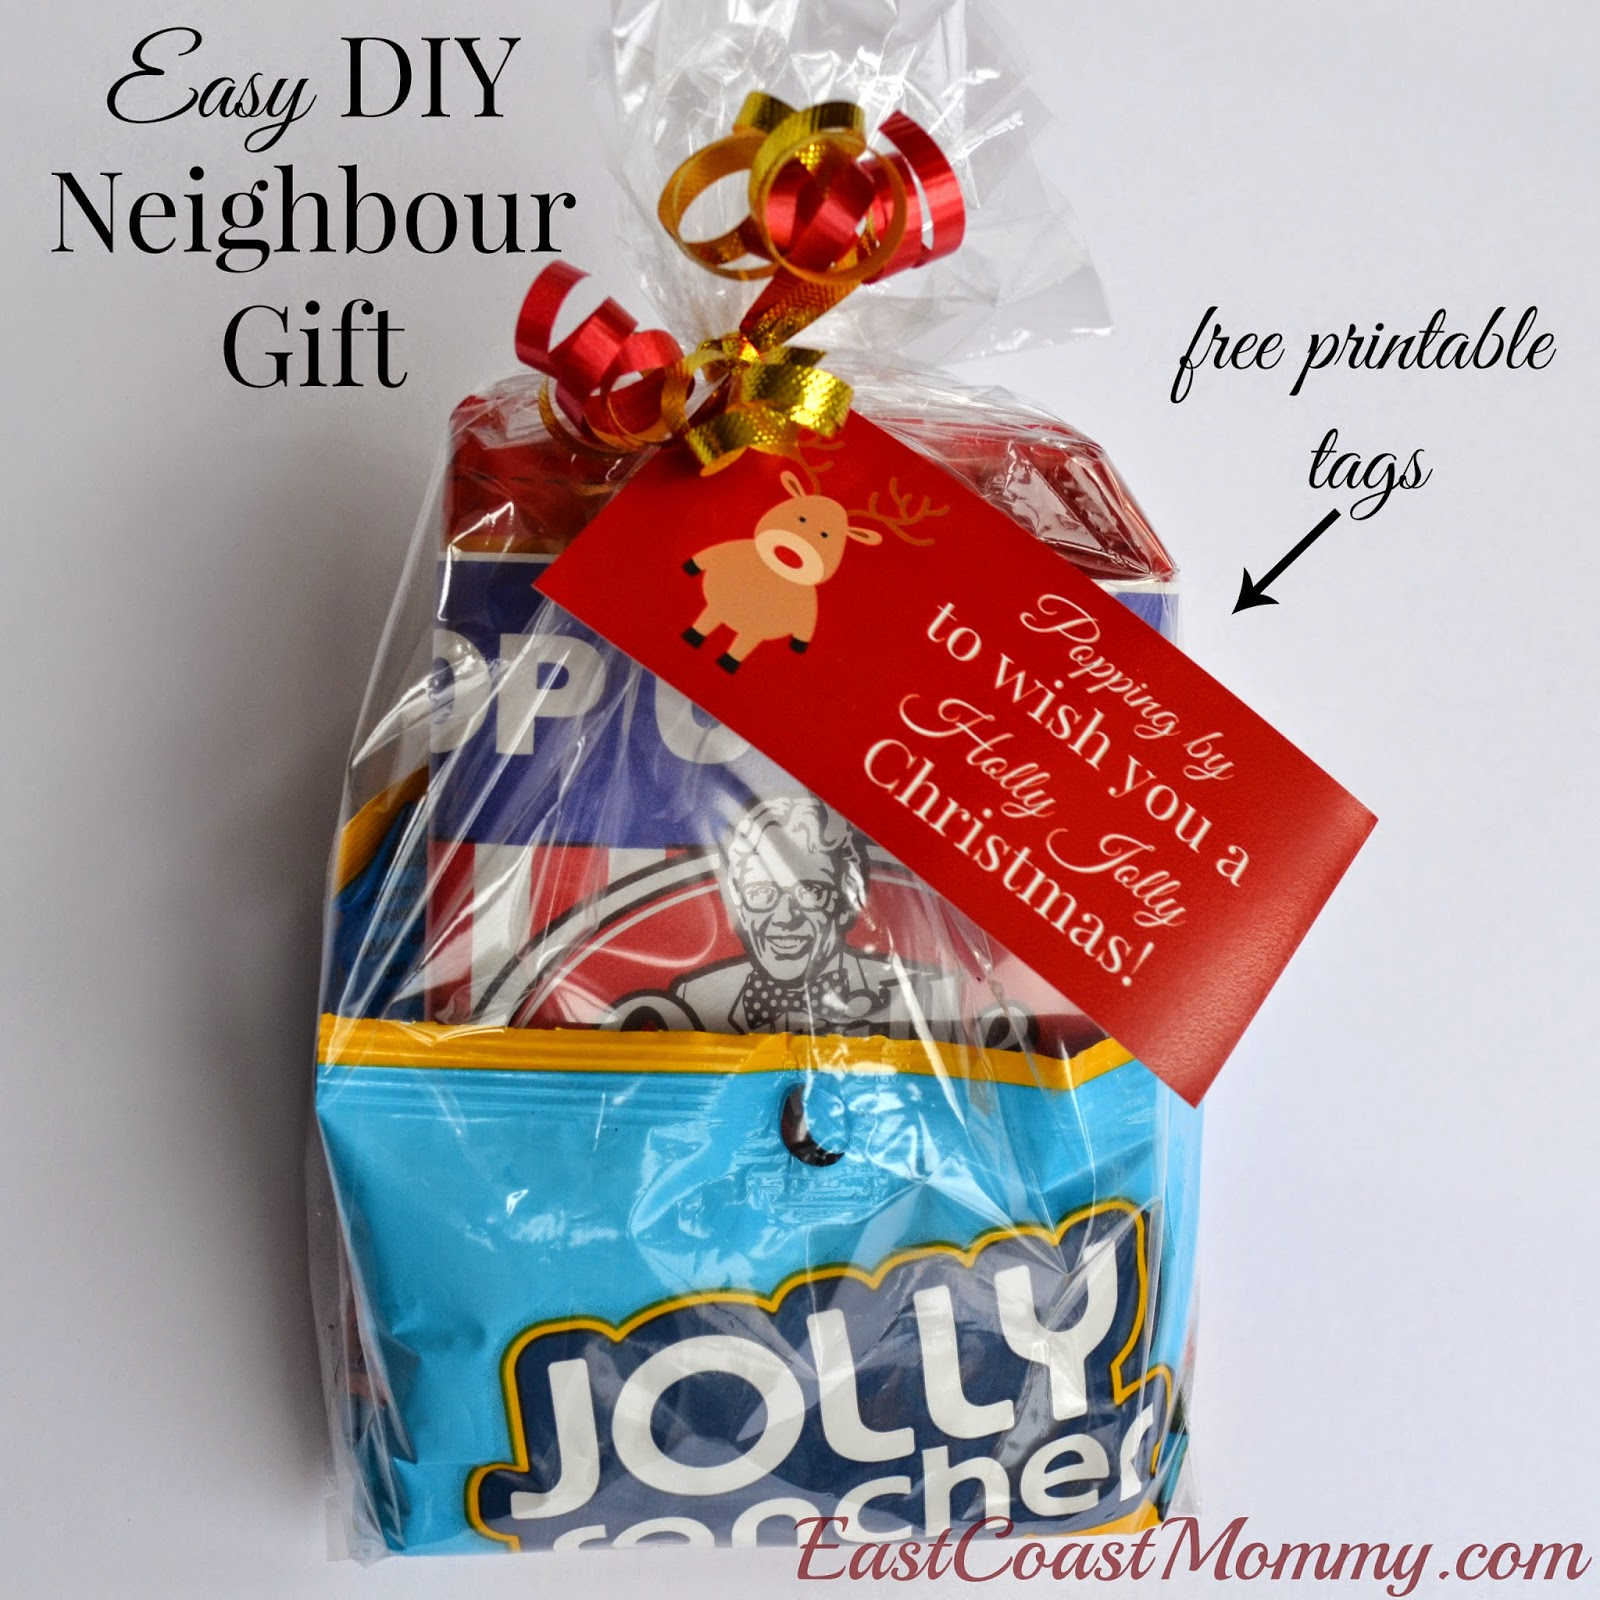 Quotes About Christmas Gifts: East Coast Mommy: Neighbour Gift Ideas For Christmas {free